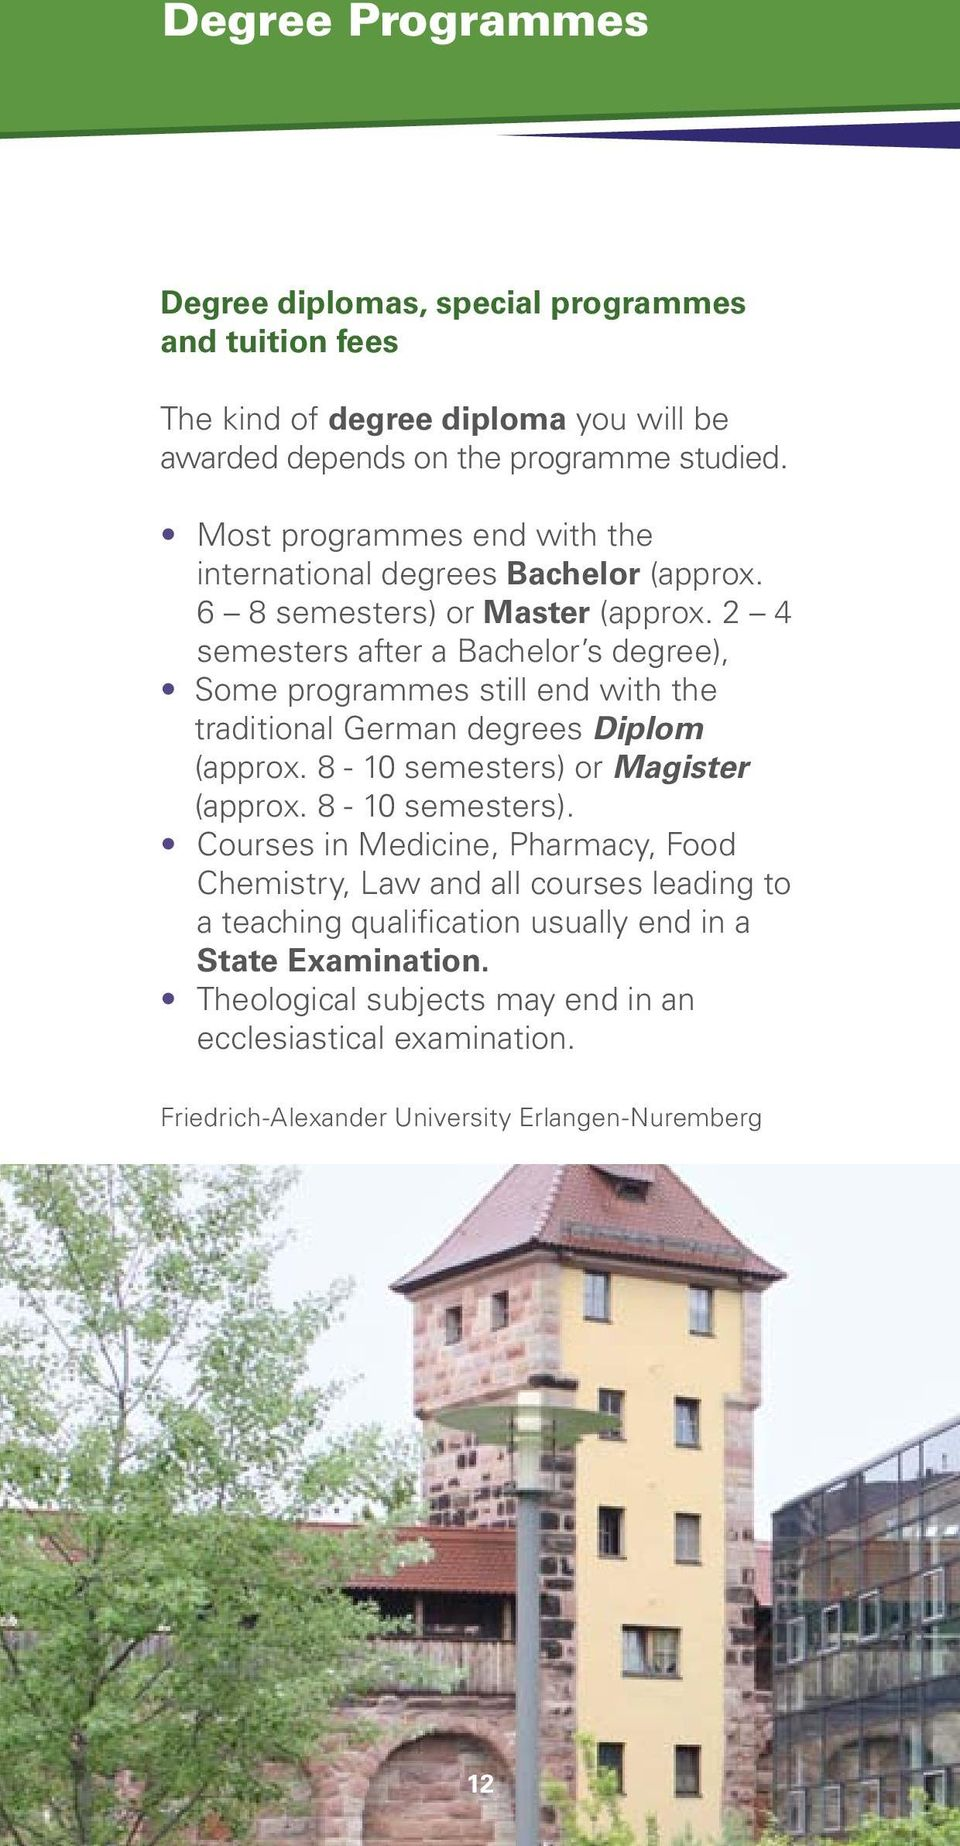 2 4 semesters after a Bachelor s degree), Some programmes still end with the traditional German degrees Diplom (approx. 8-10 semesters) or Magister (approx.